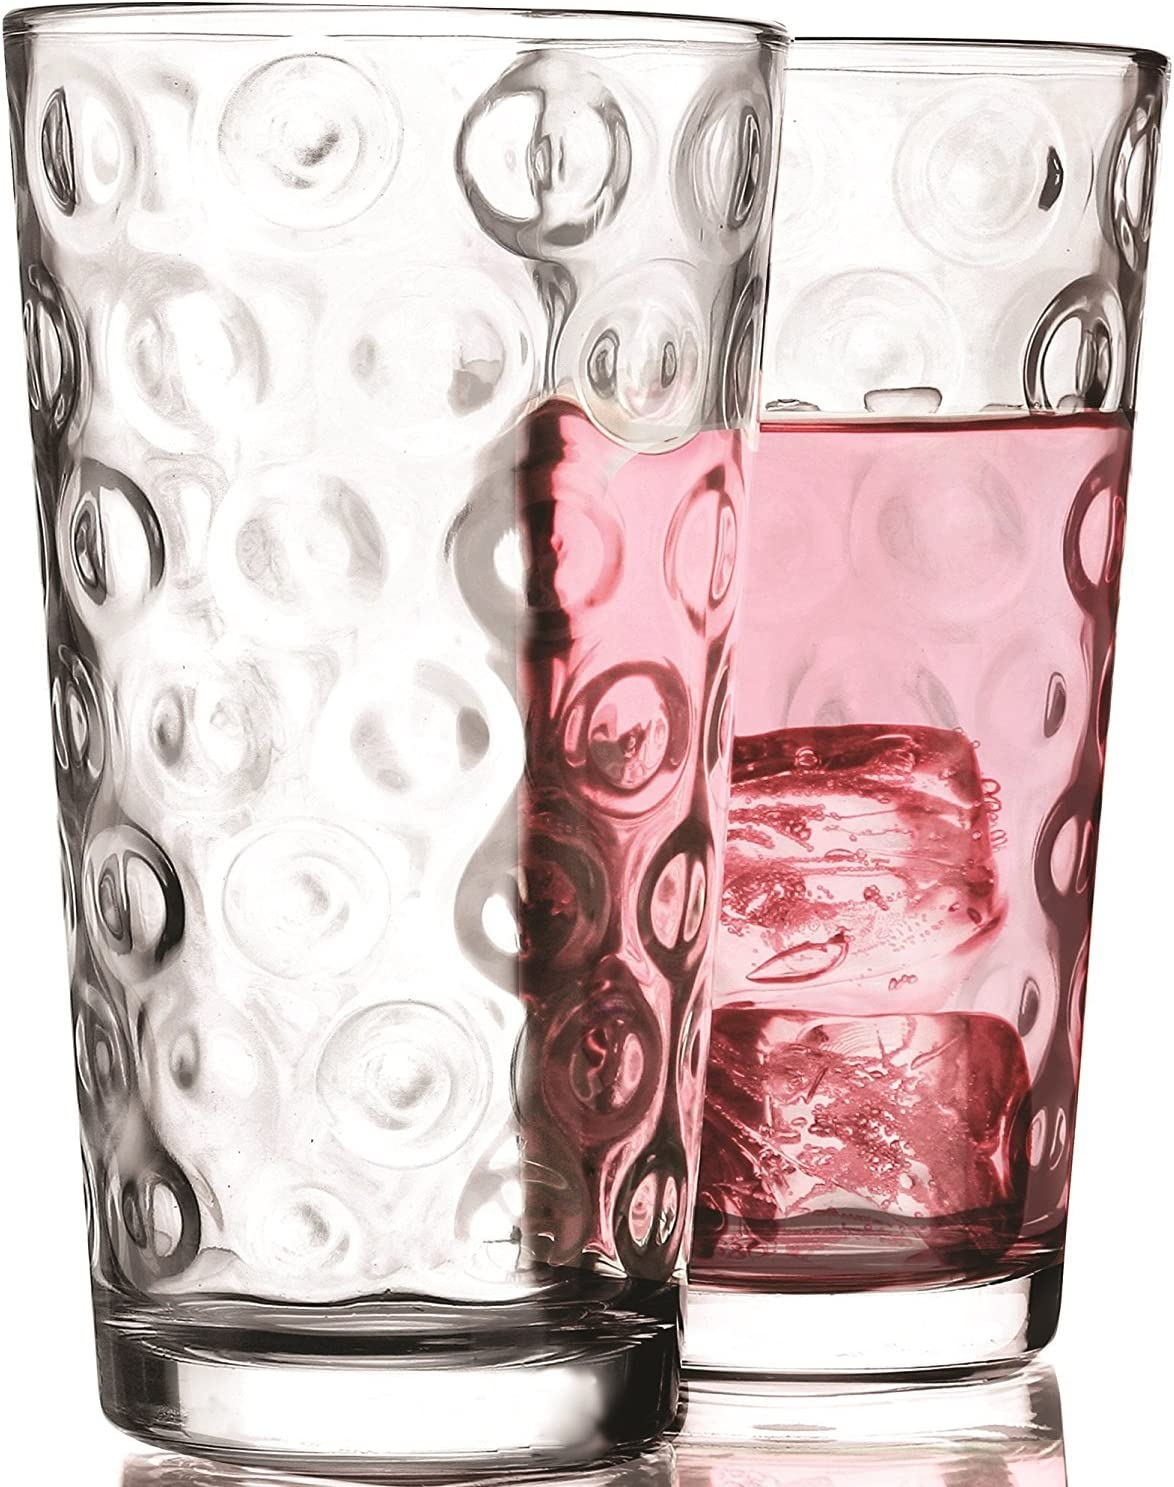 Circleware Circles Drinking Glasses Set of 4, 17 ounce, Clear 4pc